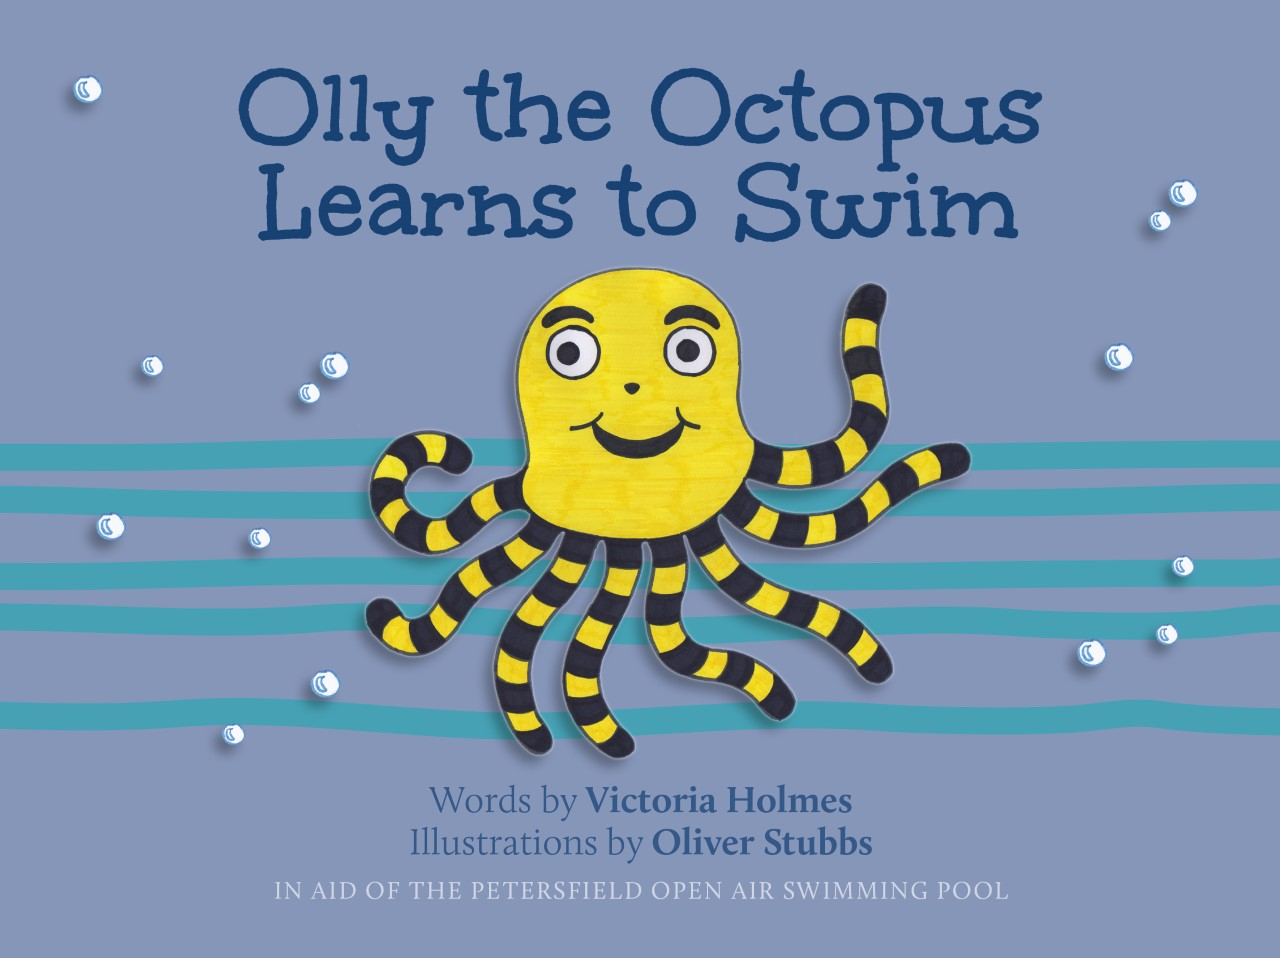 'Olly the Octopus Learns to Swim' – Buy from website or email pool